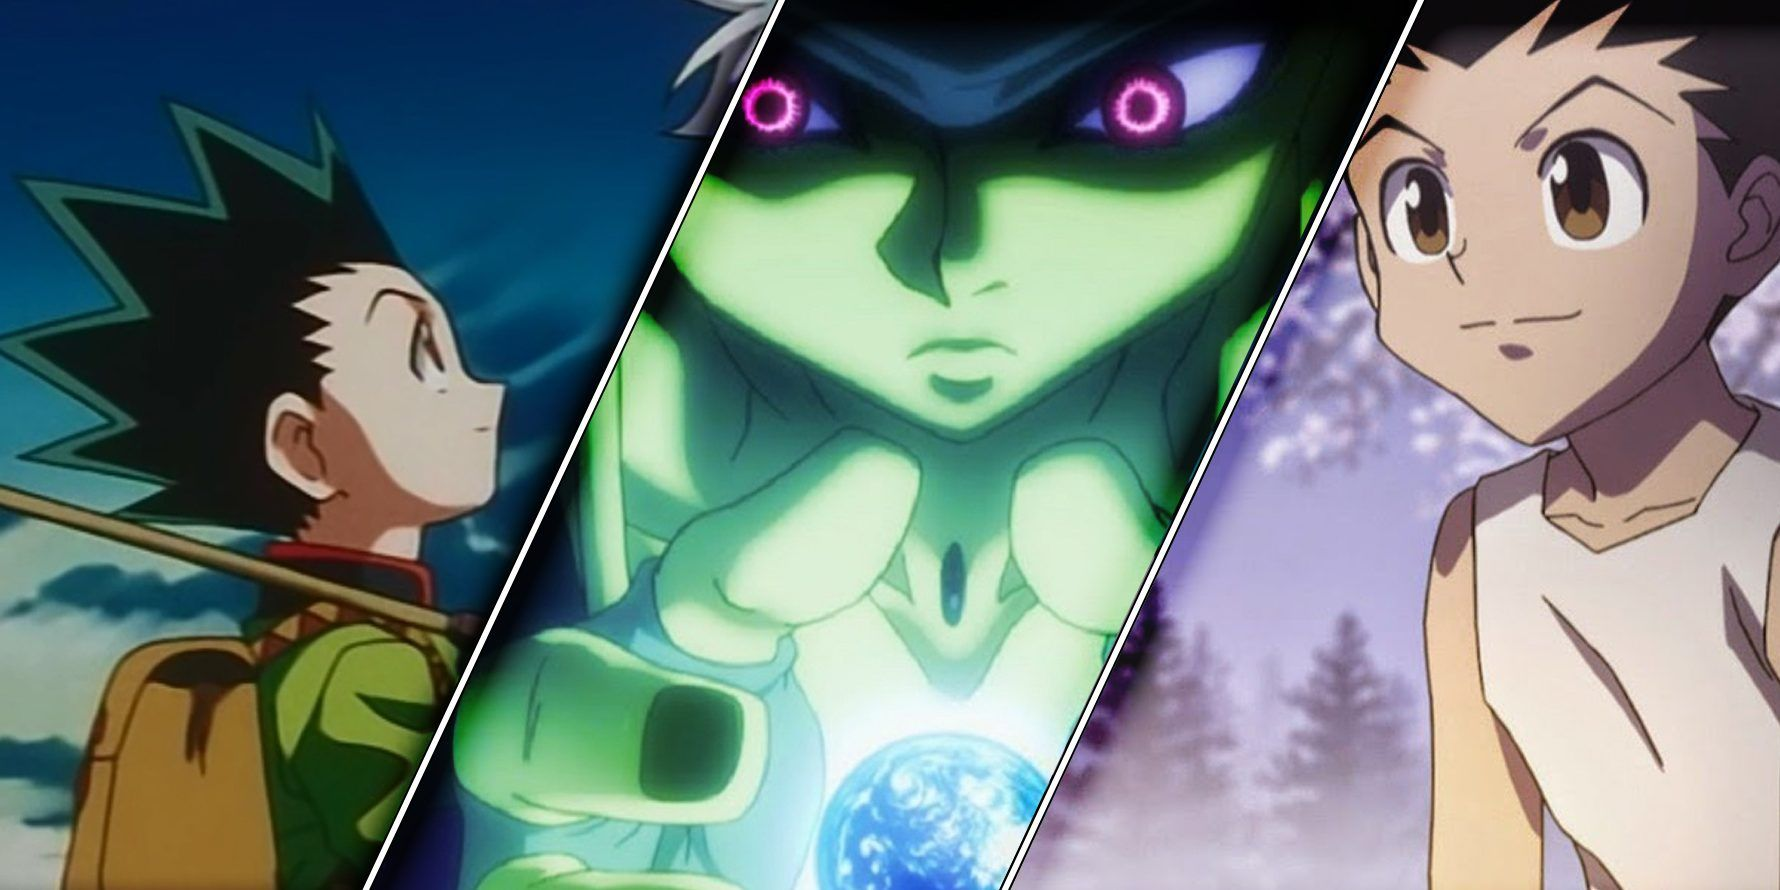 Hunter X Hunter 10 Differences Between The Anime And The Manga